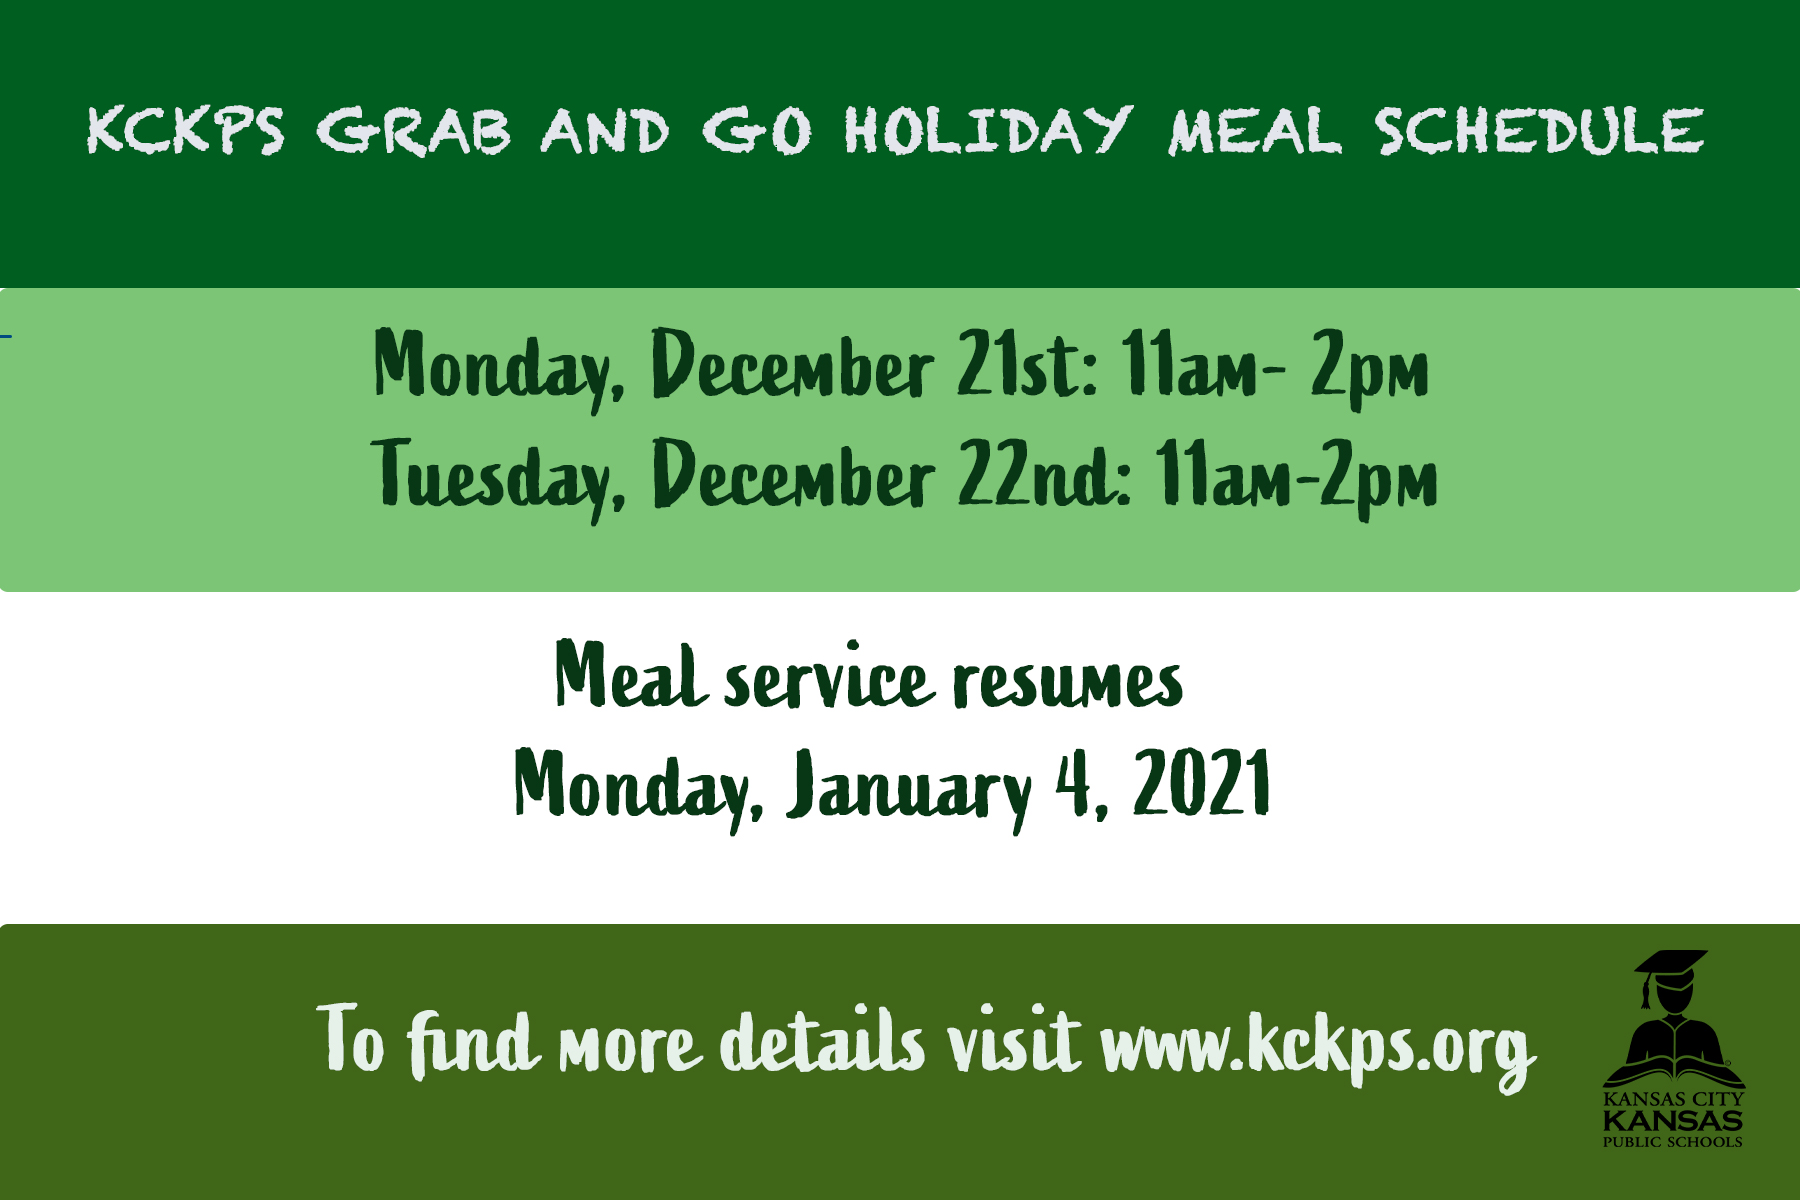 Grab and Go Meals are from 11 am - 2pm on December 21 and 22. Meal Sercvice Resumes January 4, 2021